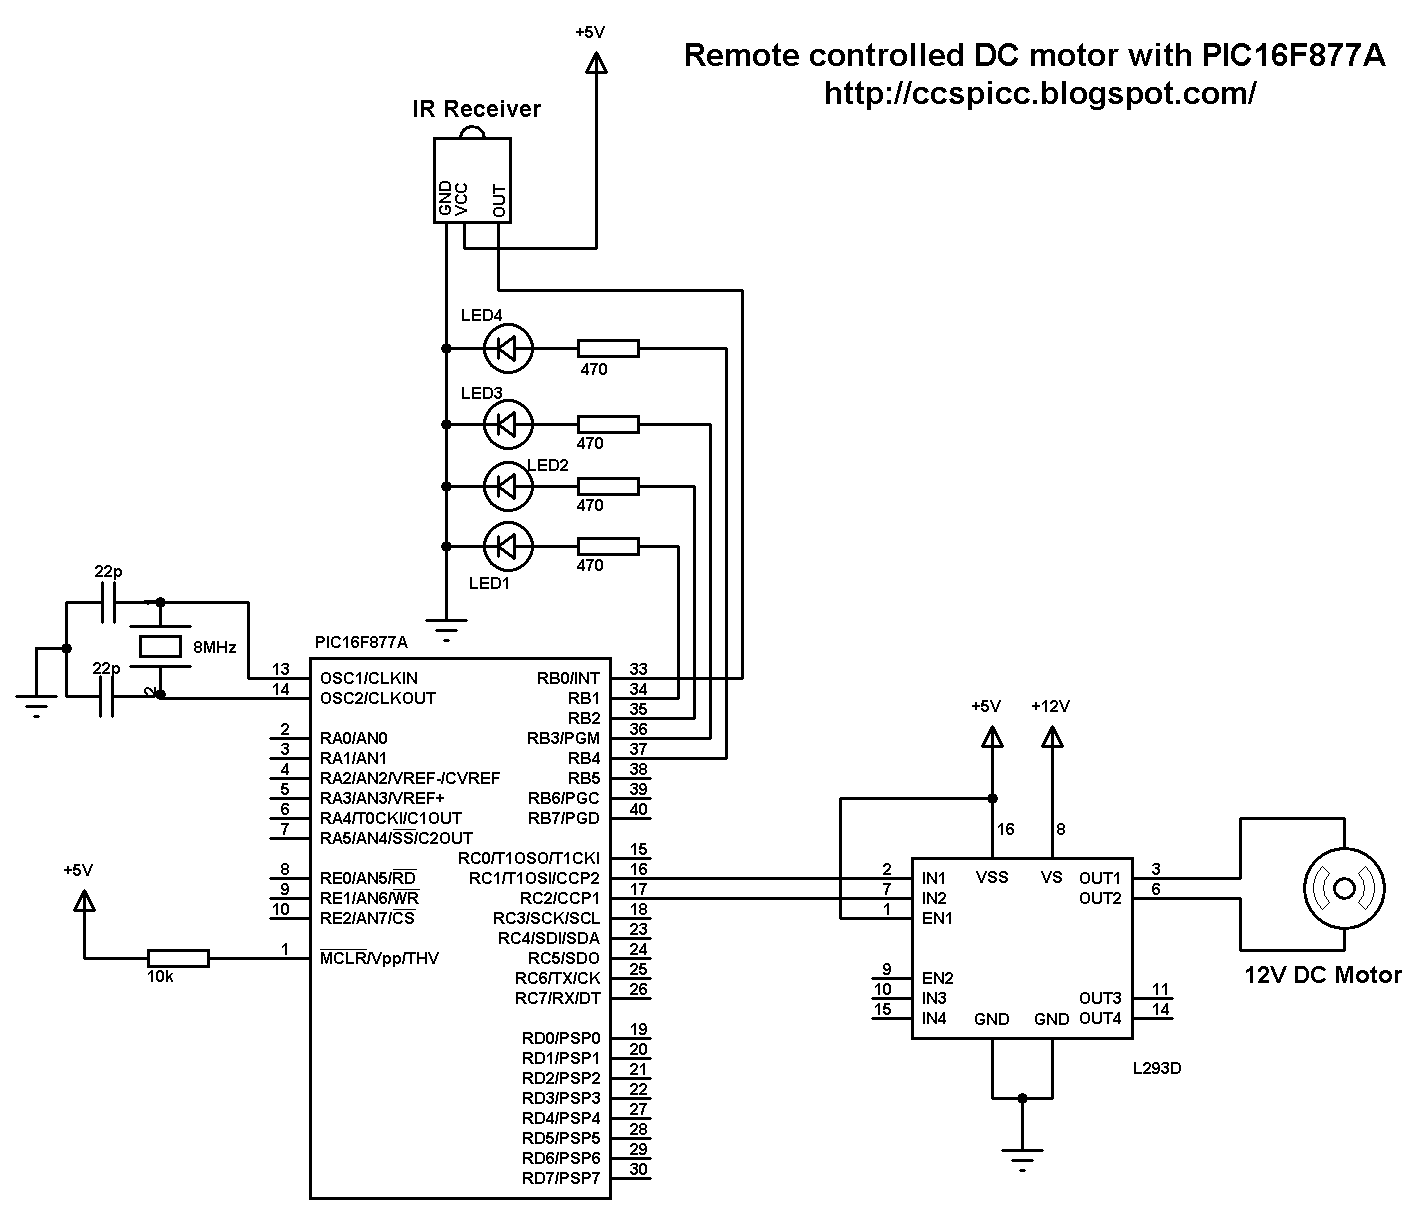 Remote controlled DC motor using PIC16F877A microcontroller